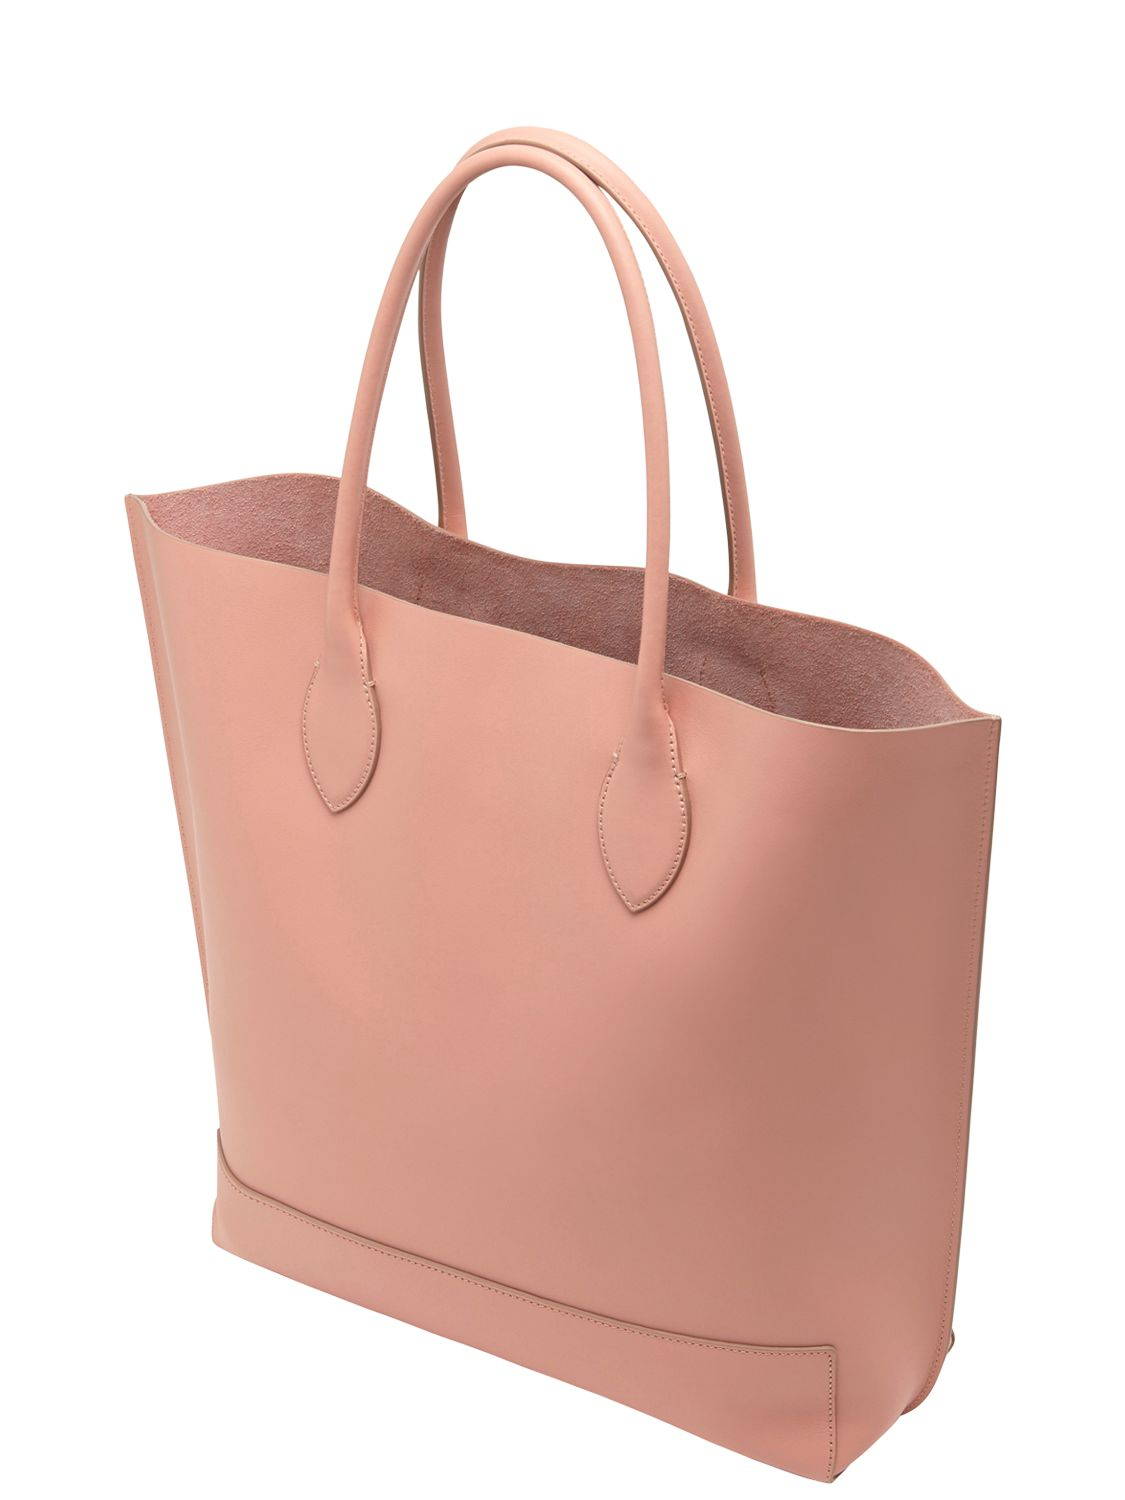 6e91ac79a8 Lyst - Mulberry Blossom Nappa Leather Tote Bag in Pink